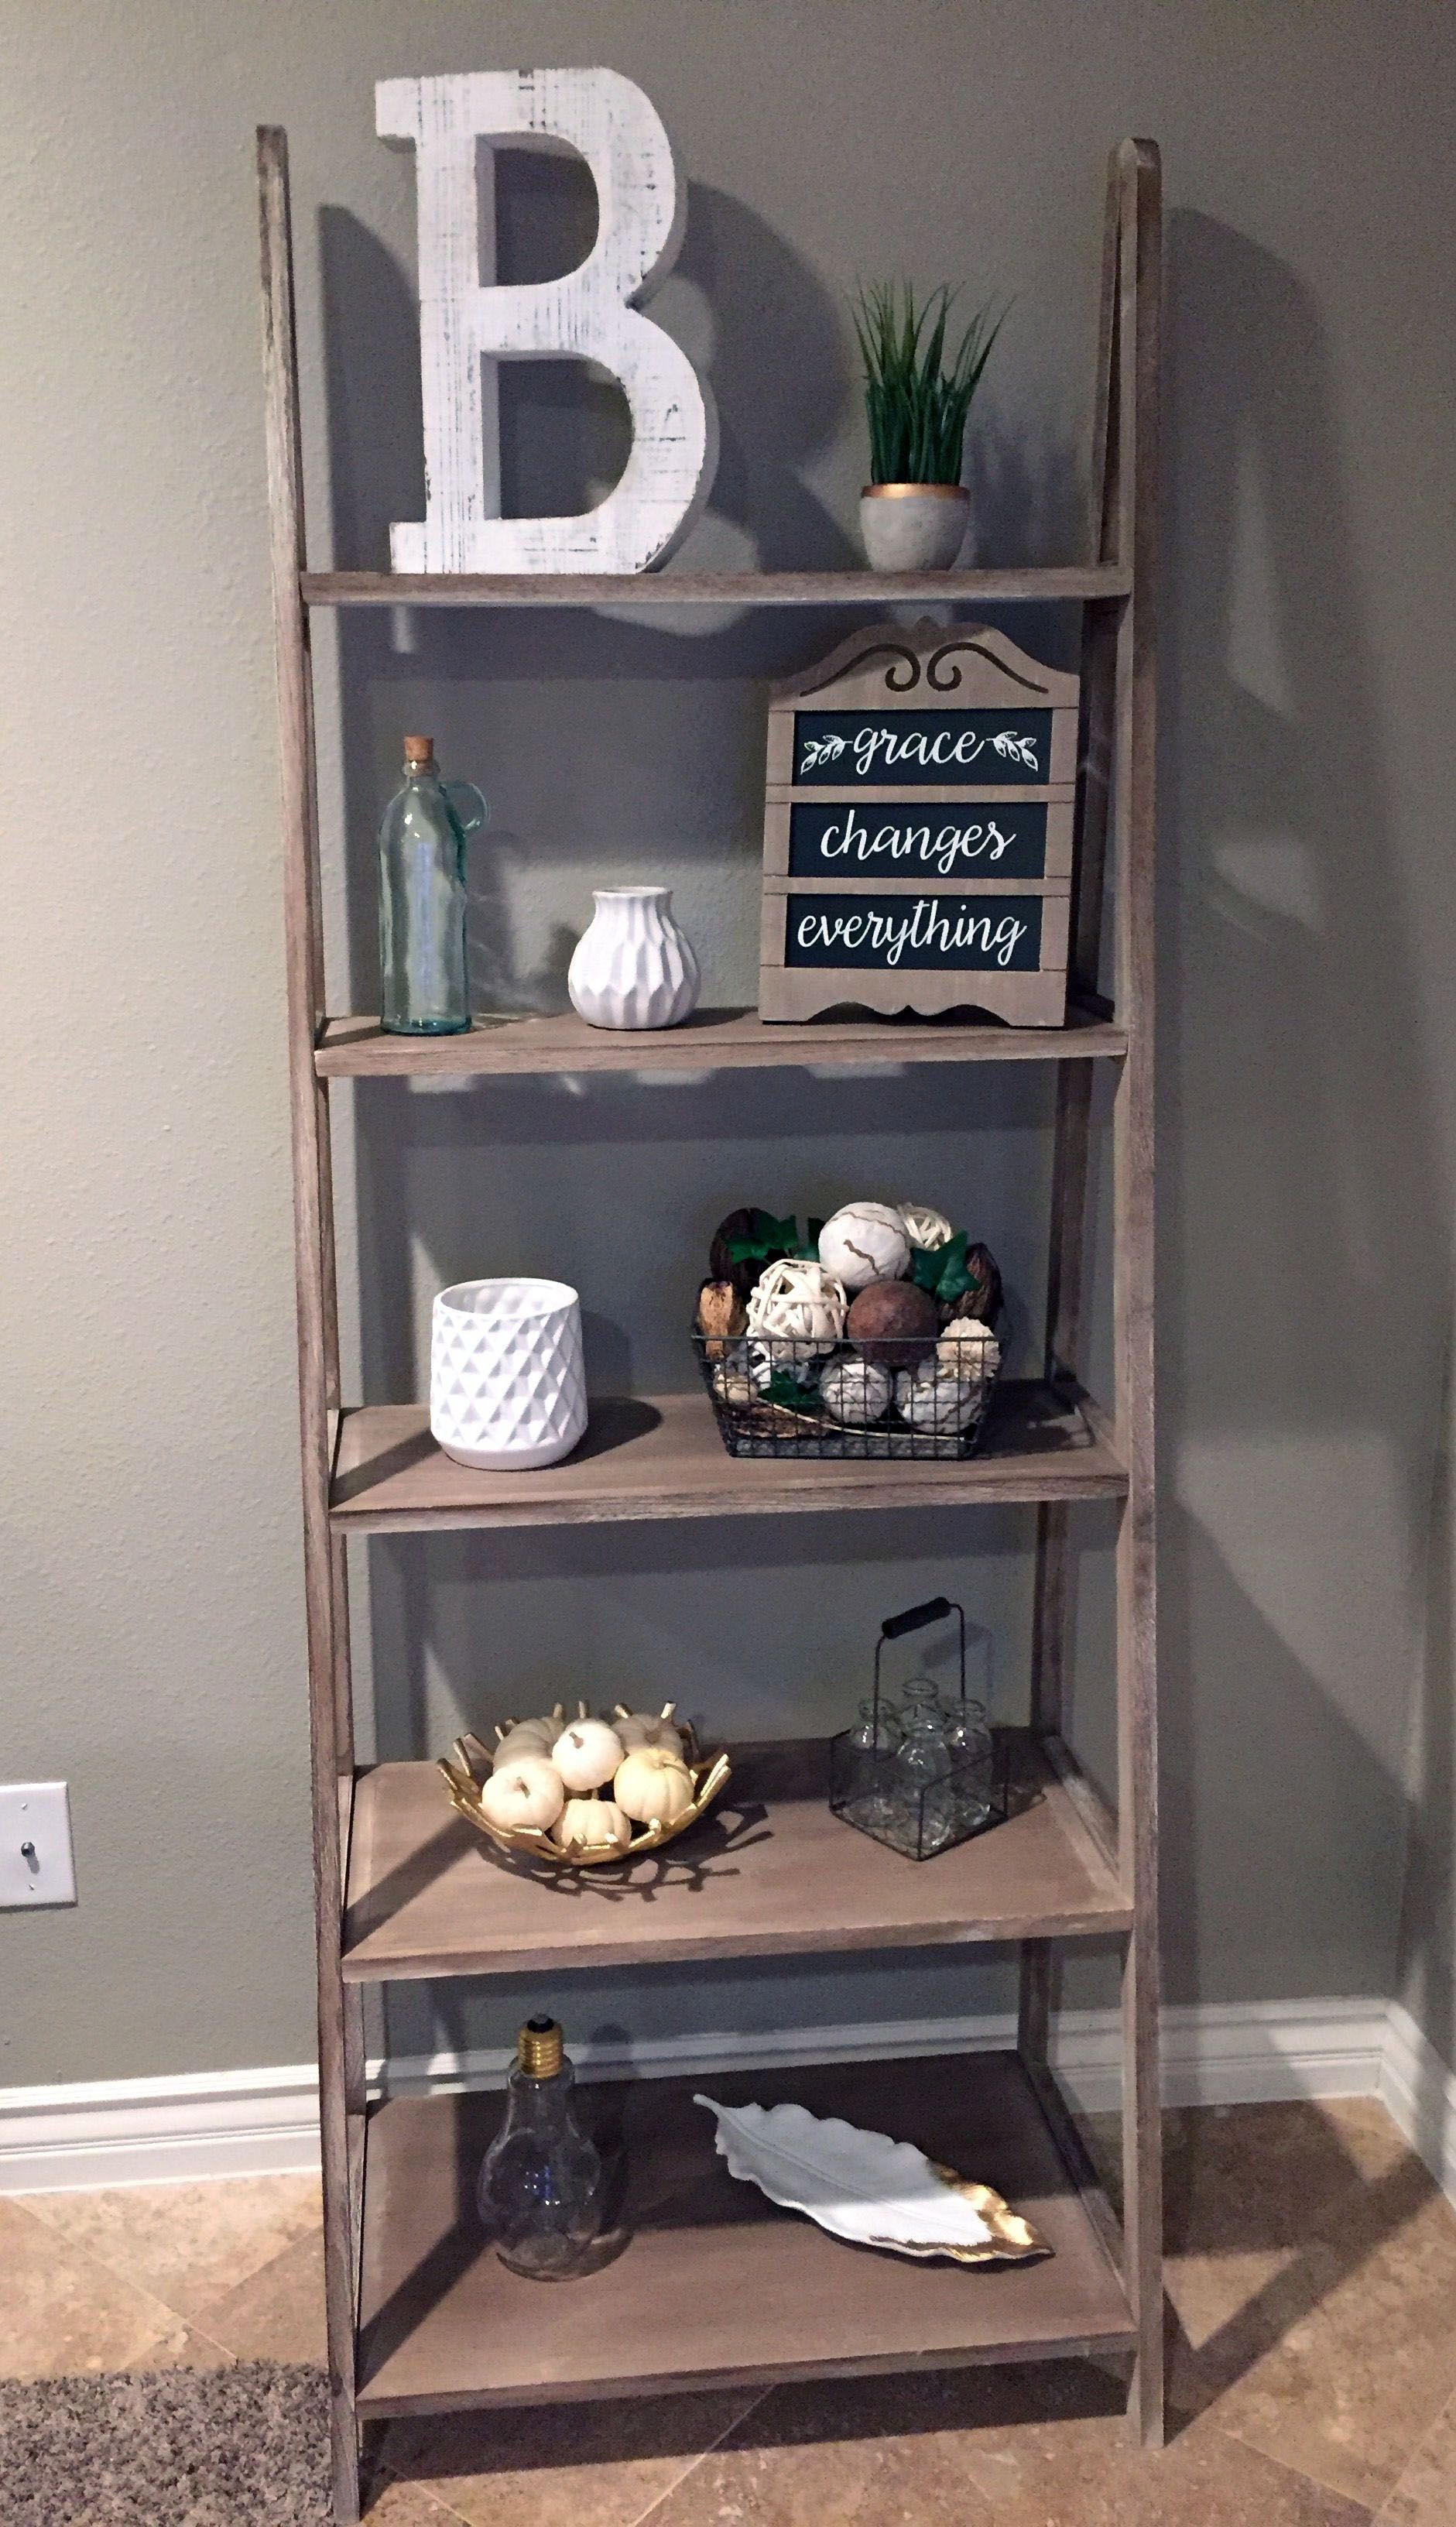 Do It Yourself Step Ladder Shelves (With images) | Shelf ...